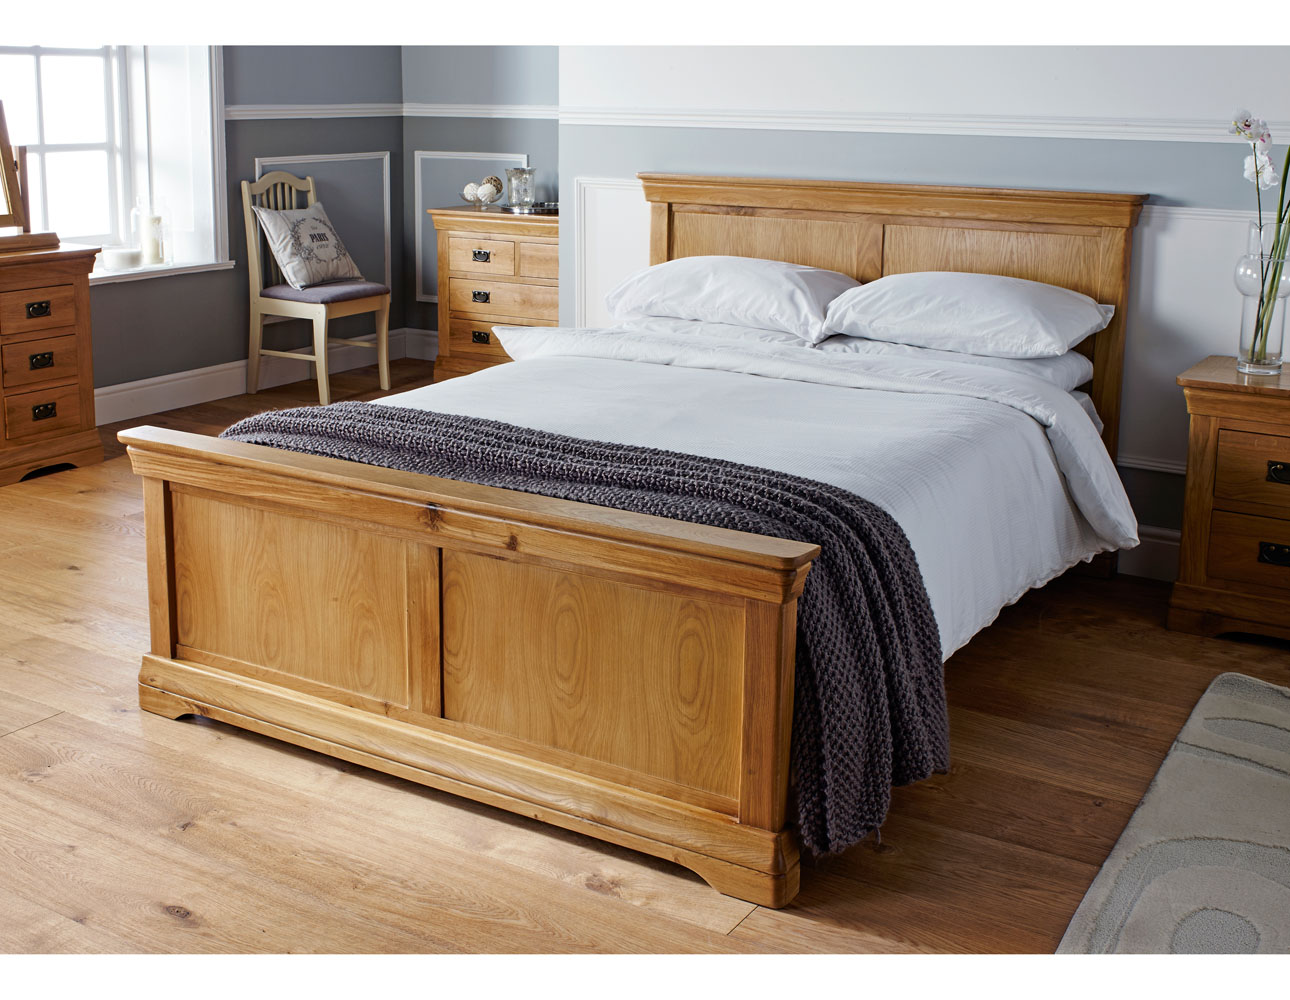 Farmhouse Country Oak Double Bed 4ft 6 inches - WINTER SALE